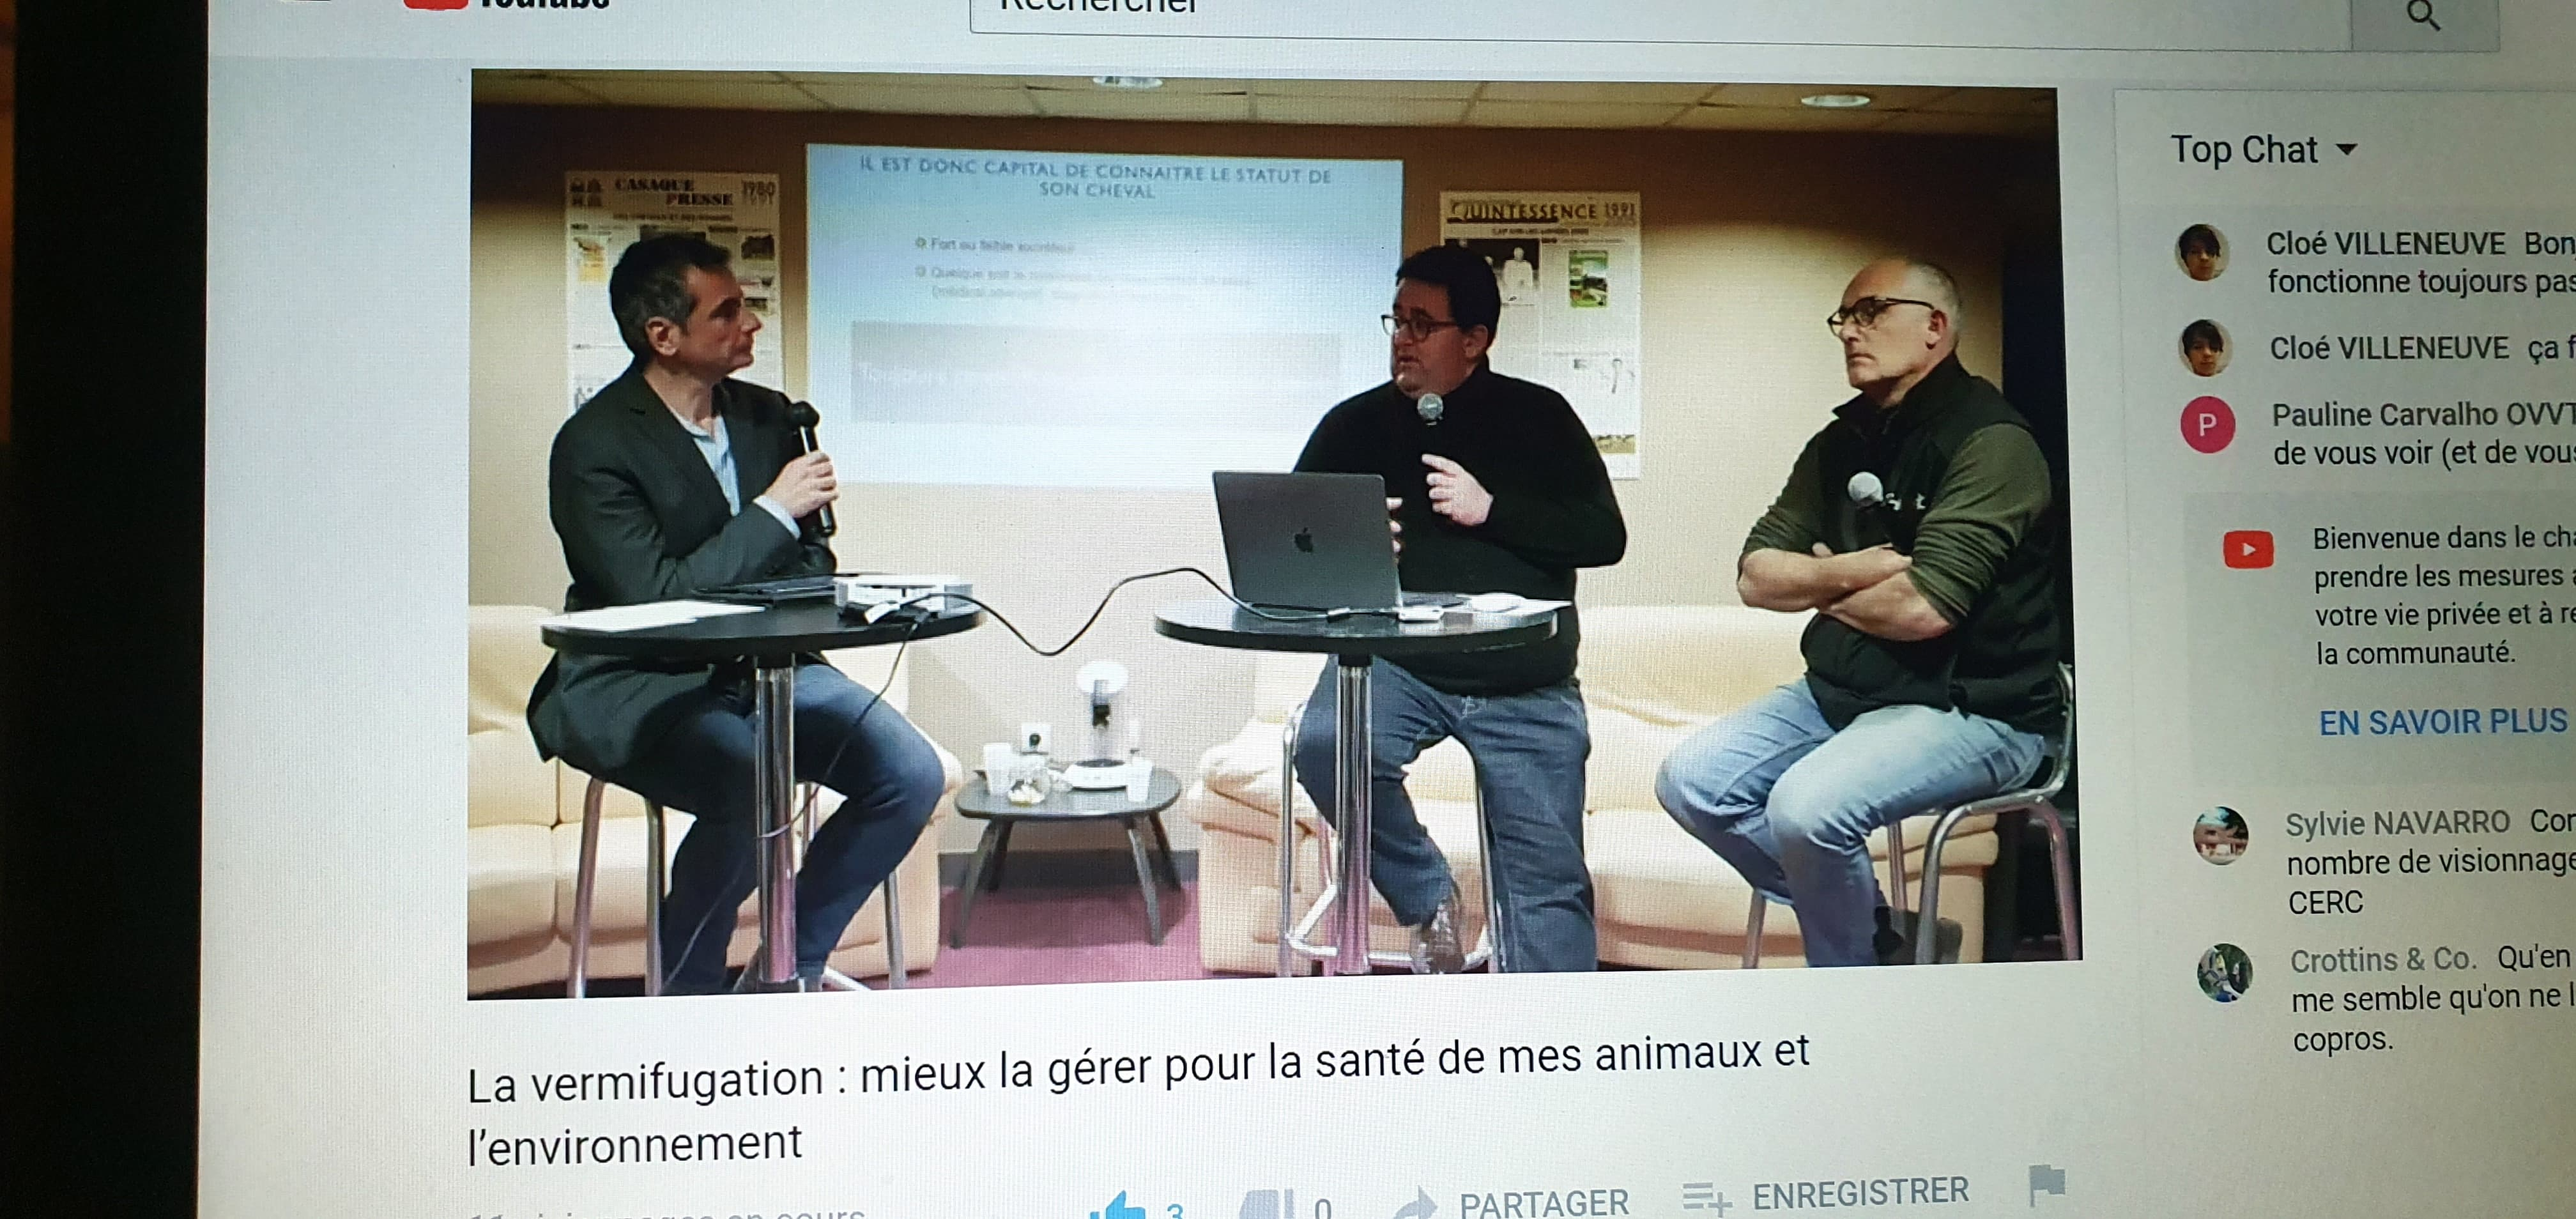 Table ronde sur la vermifugation et le parasistisme - Salon digital du cheval - replay